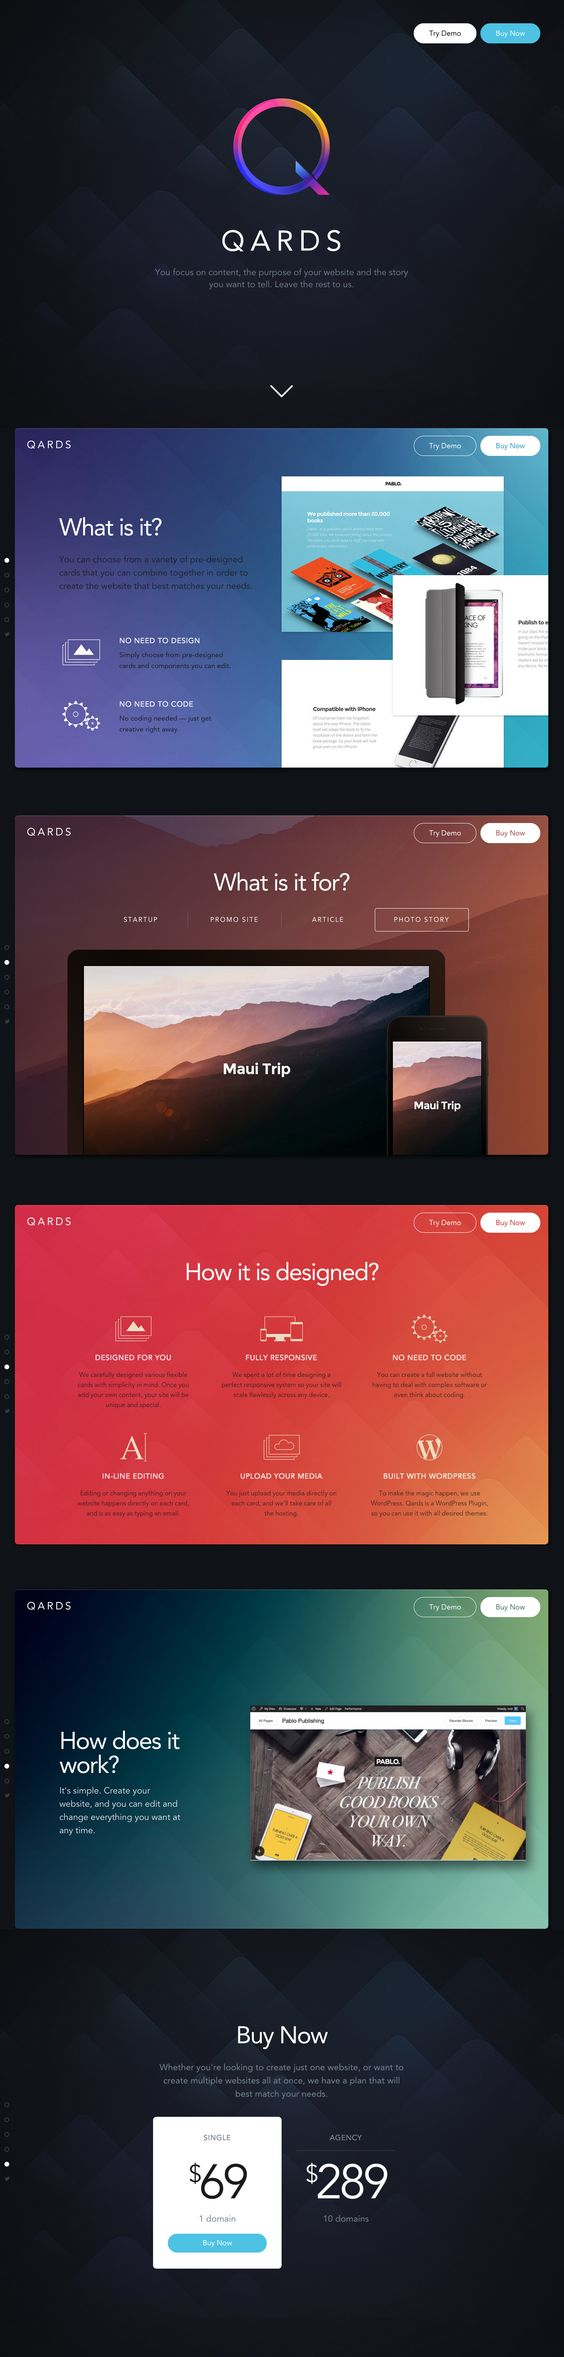 This is a good layout for how to assist clients when designing and building their website. Great questions to ask!: